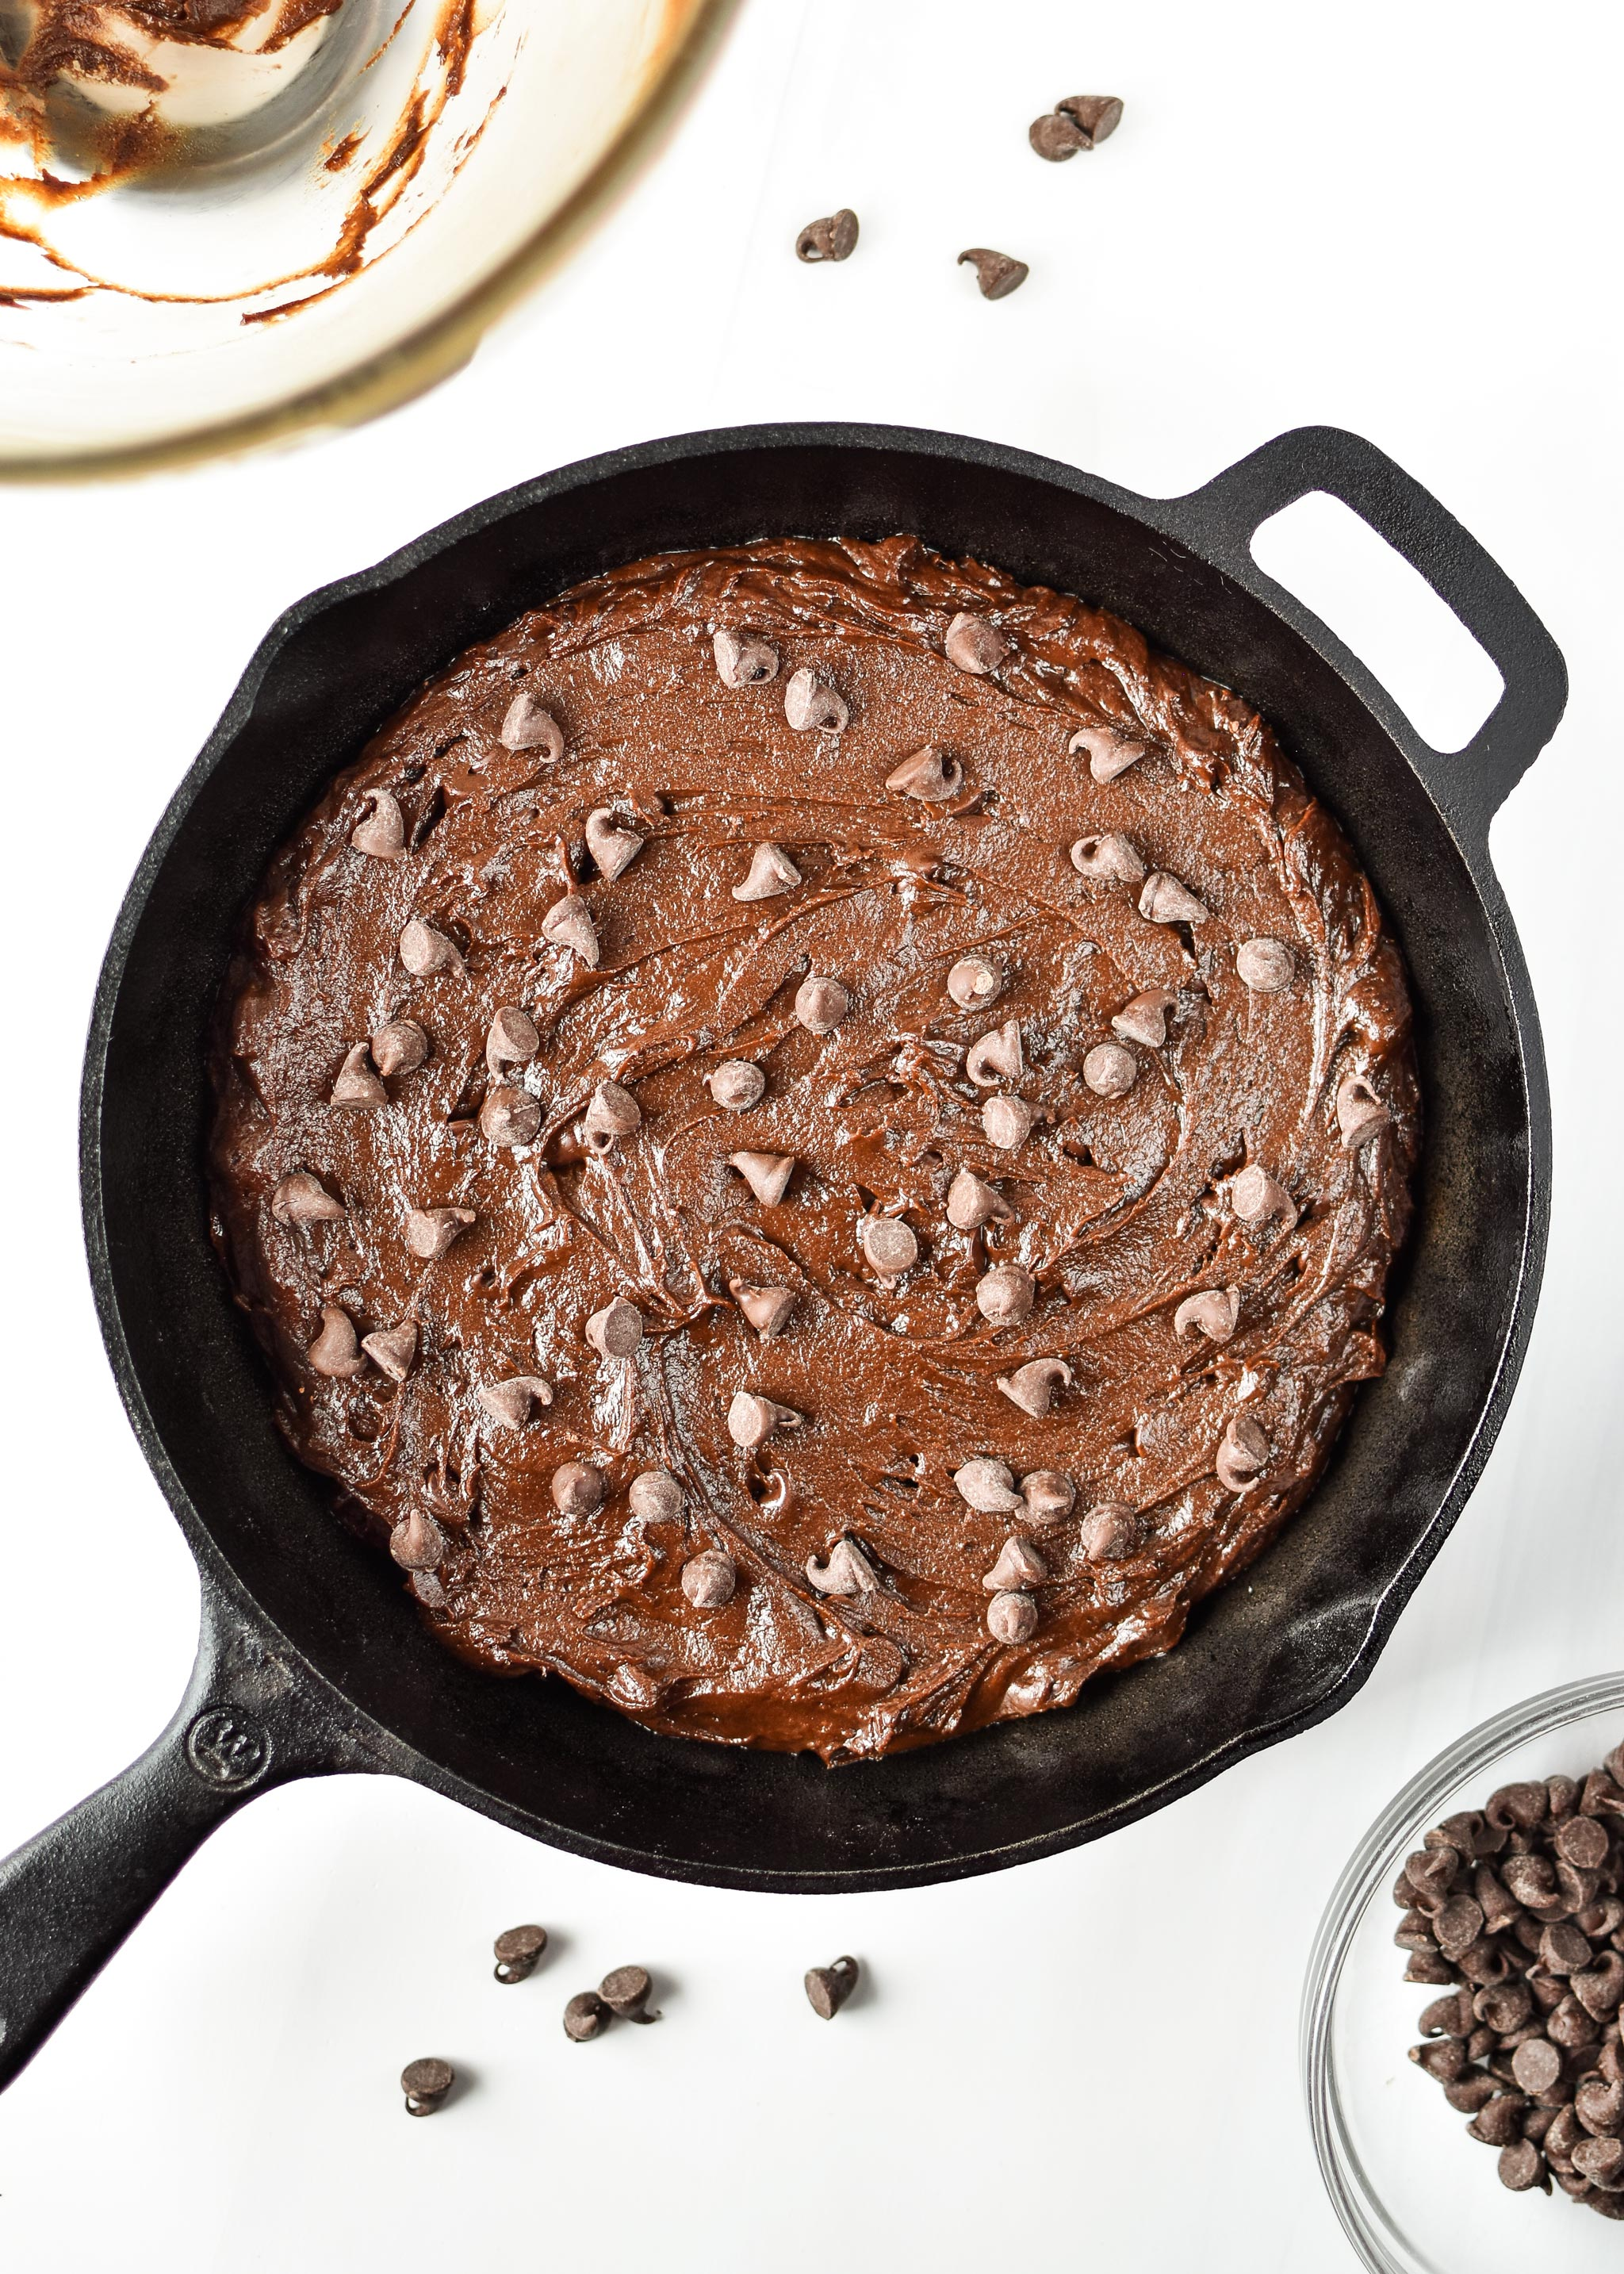 Batter with chocolate chips - sweet potato brownie skillet about to go into the oven